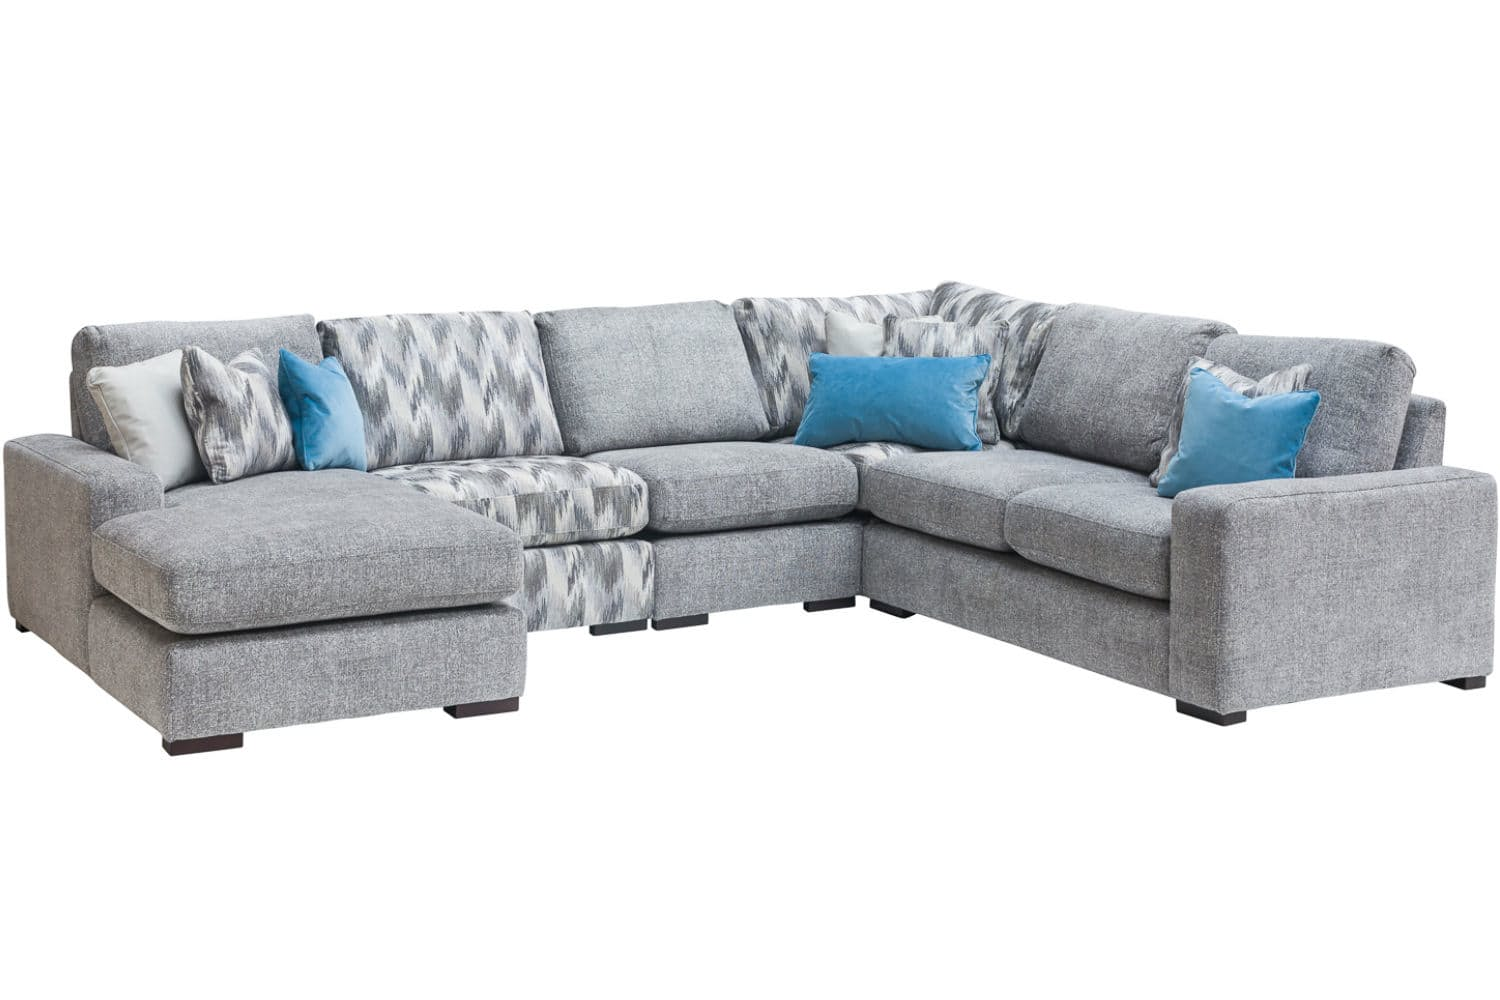 sofa w chaise chair legs replacement gotham with ireland